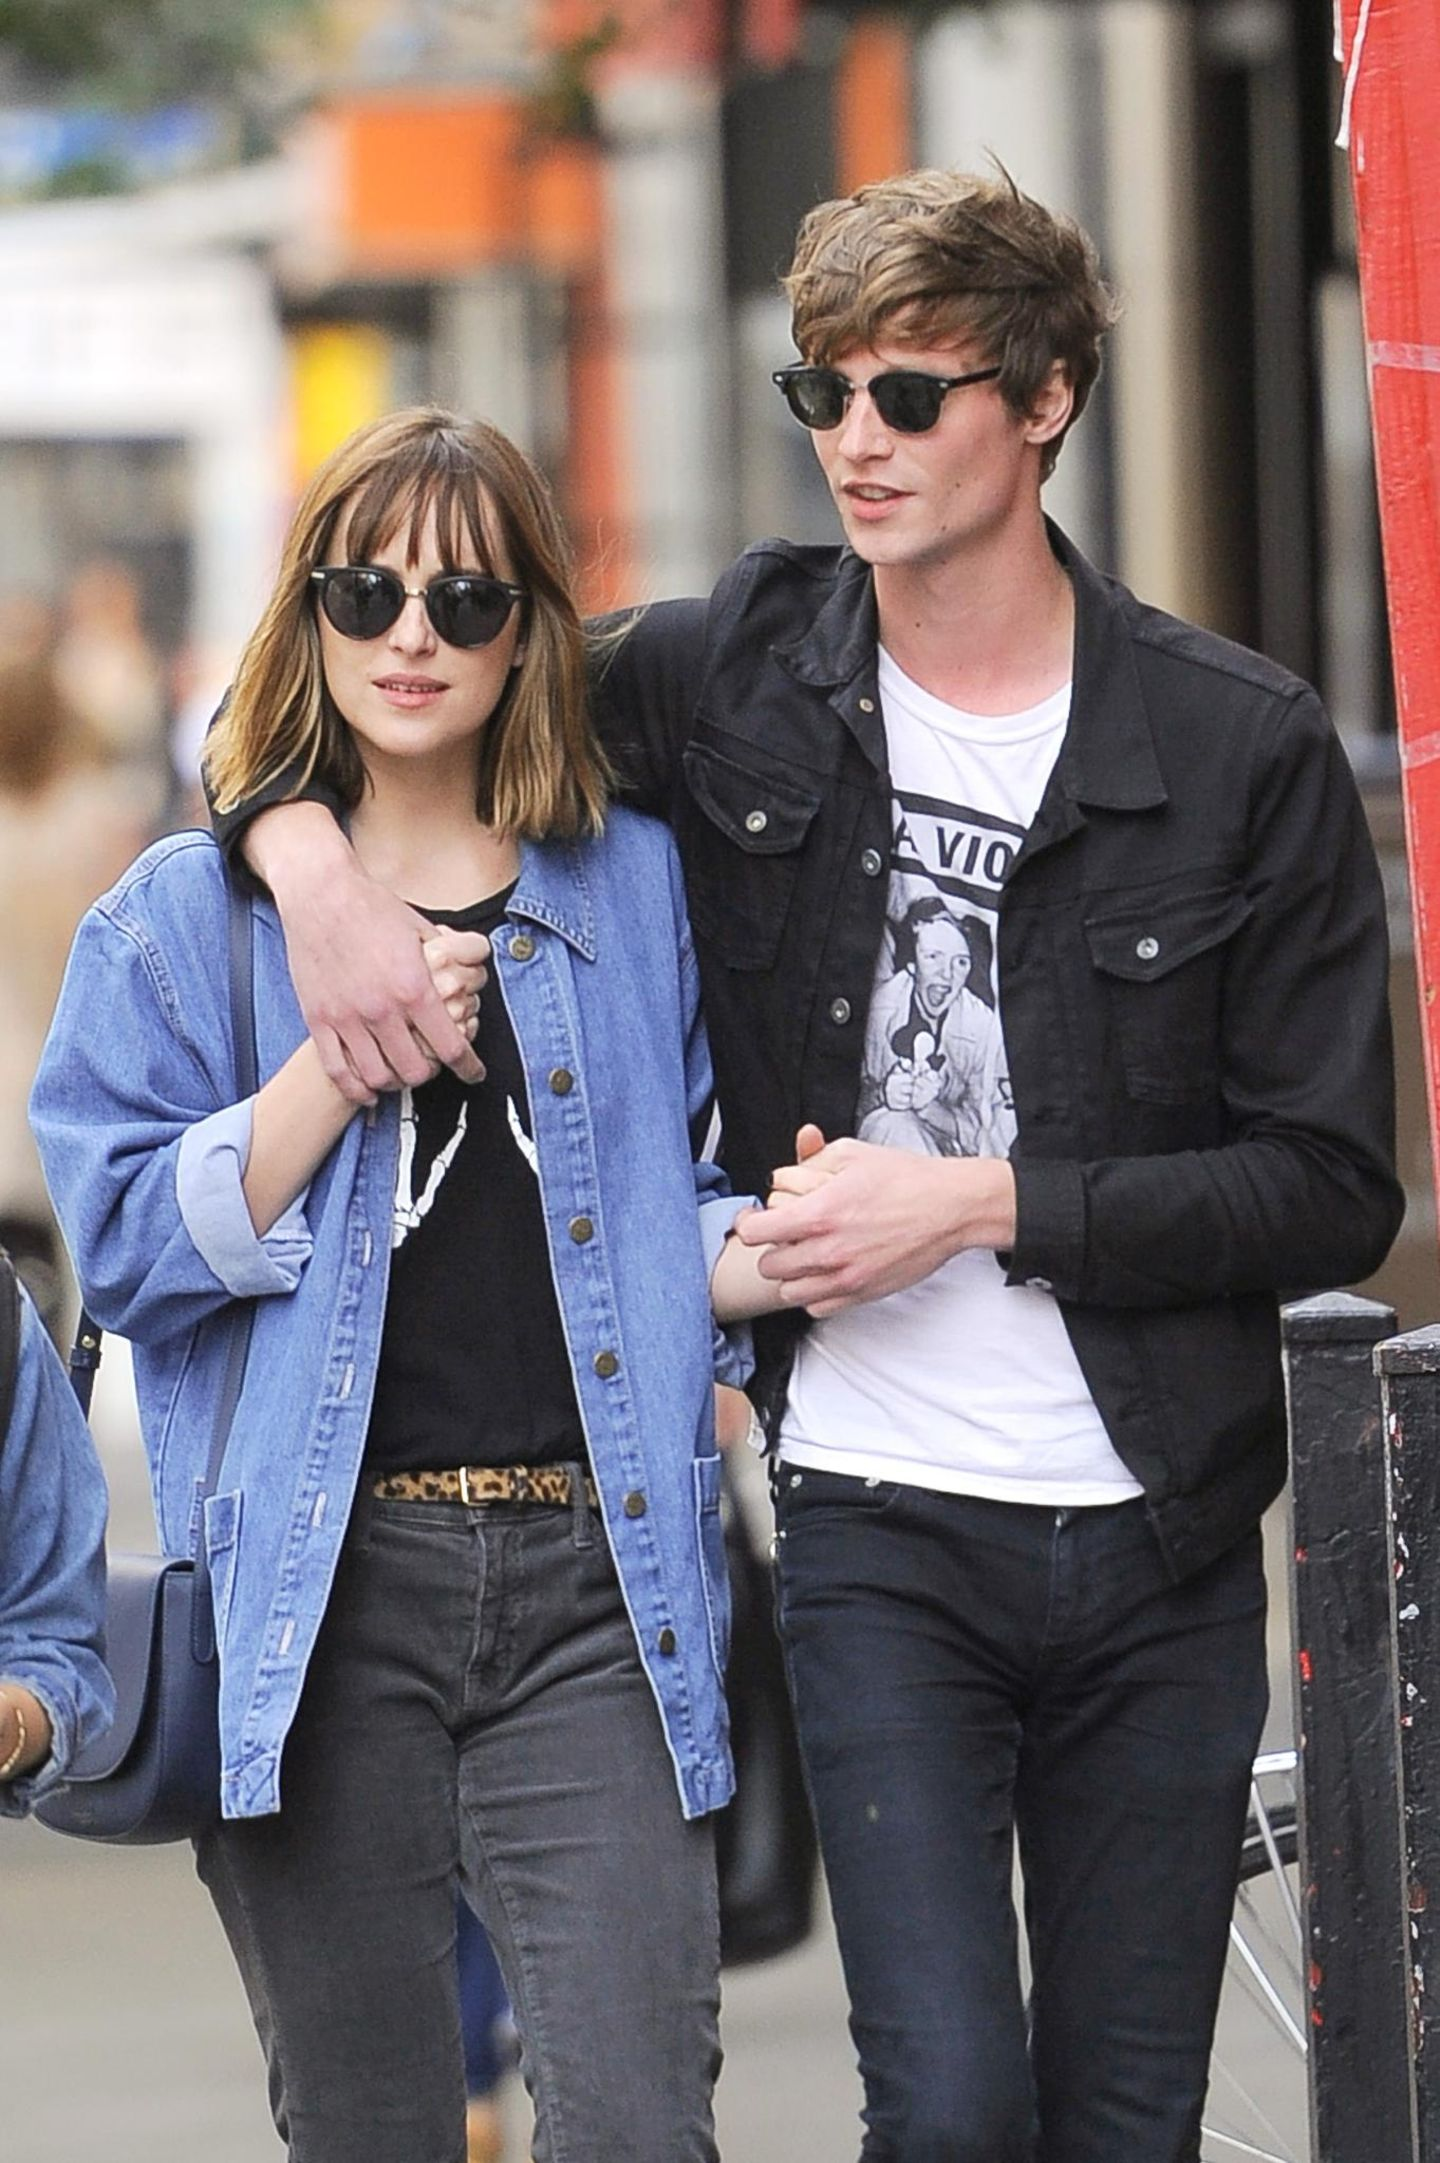 21. September 2015: Dakota Johnson und ihr on-off-Partner Matthew Hitt gehen in New York spazieren.